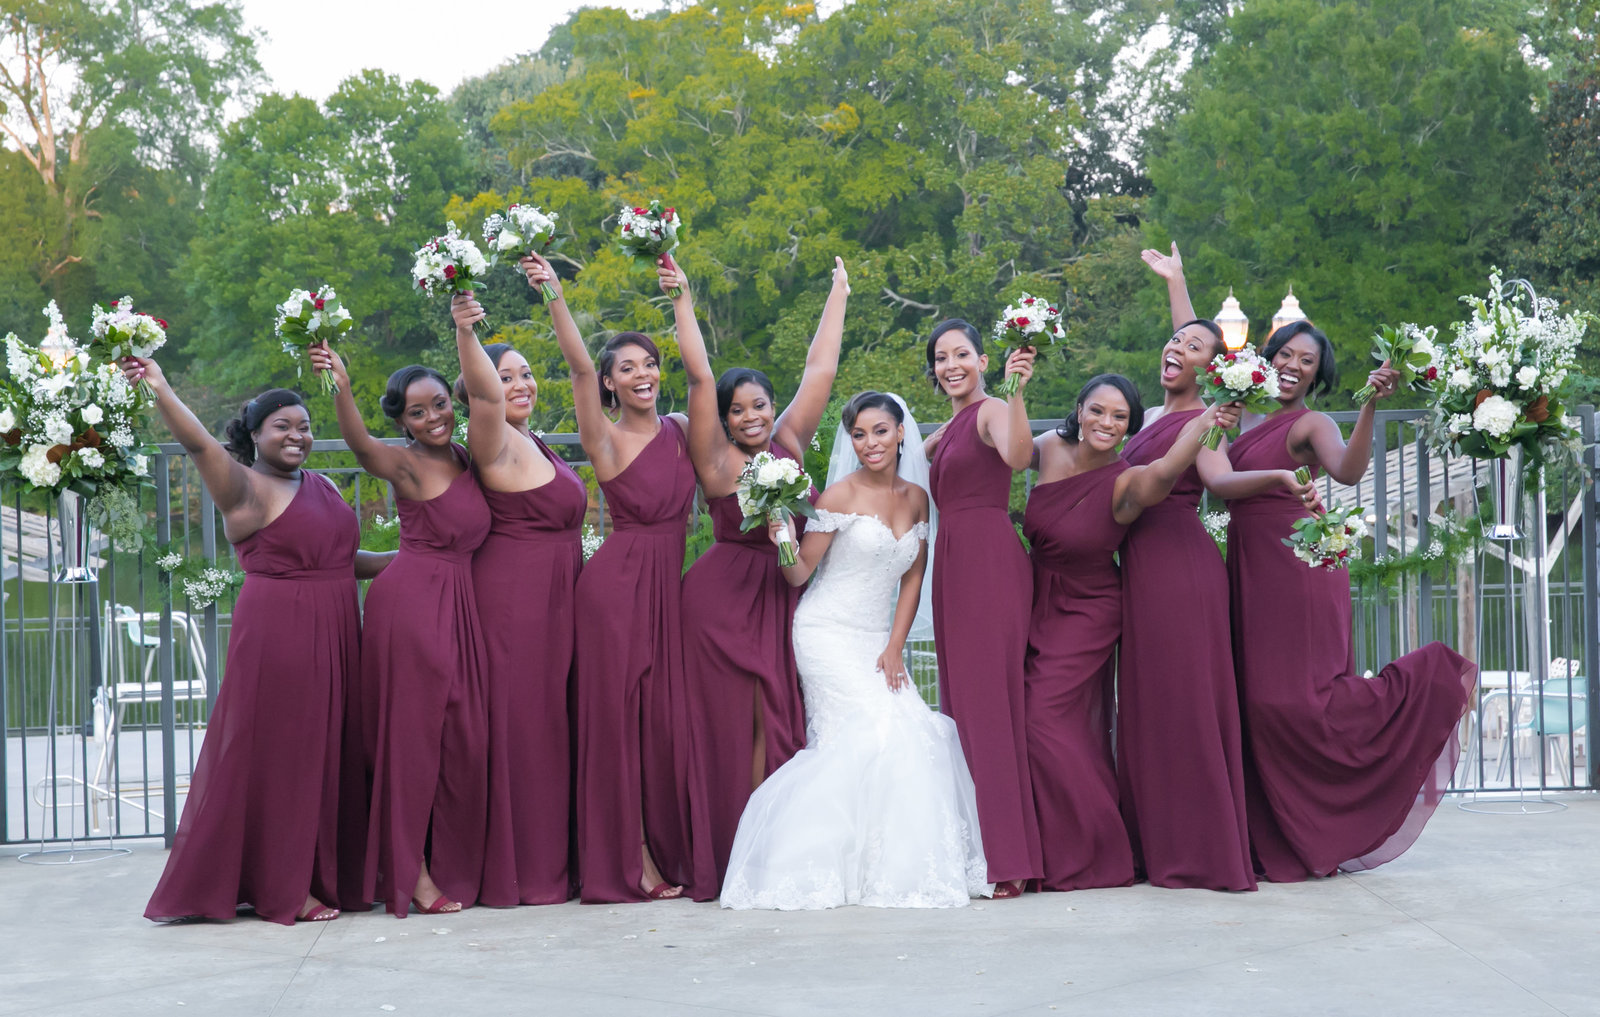 That moment when your entire When your bridal squad is beyond excited for you.